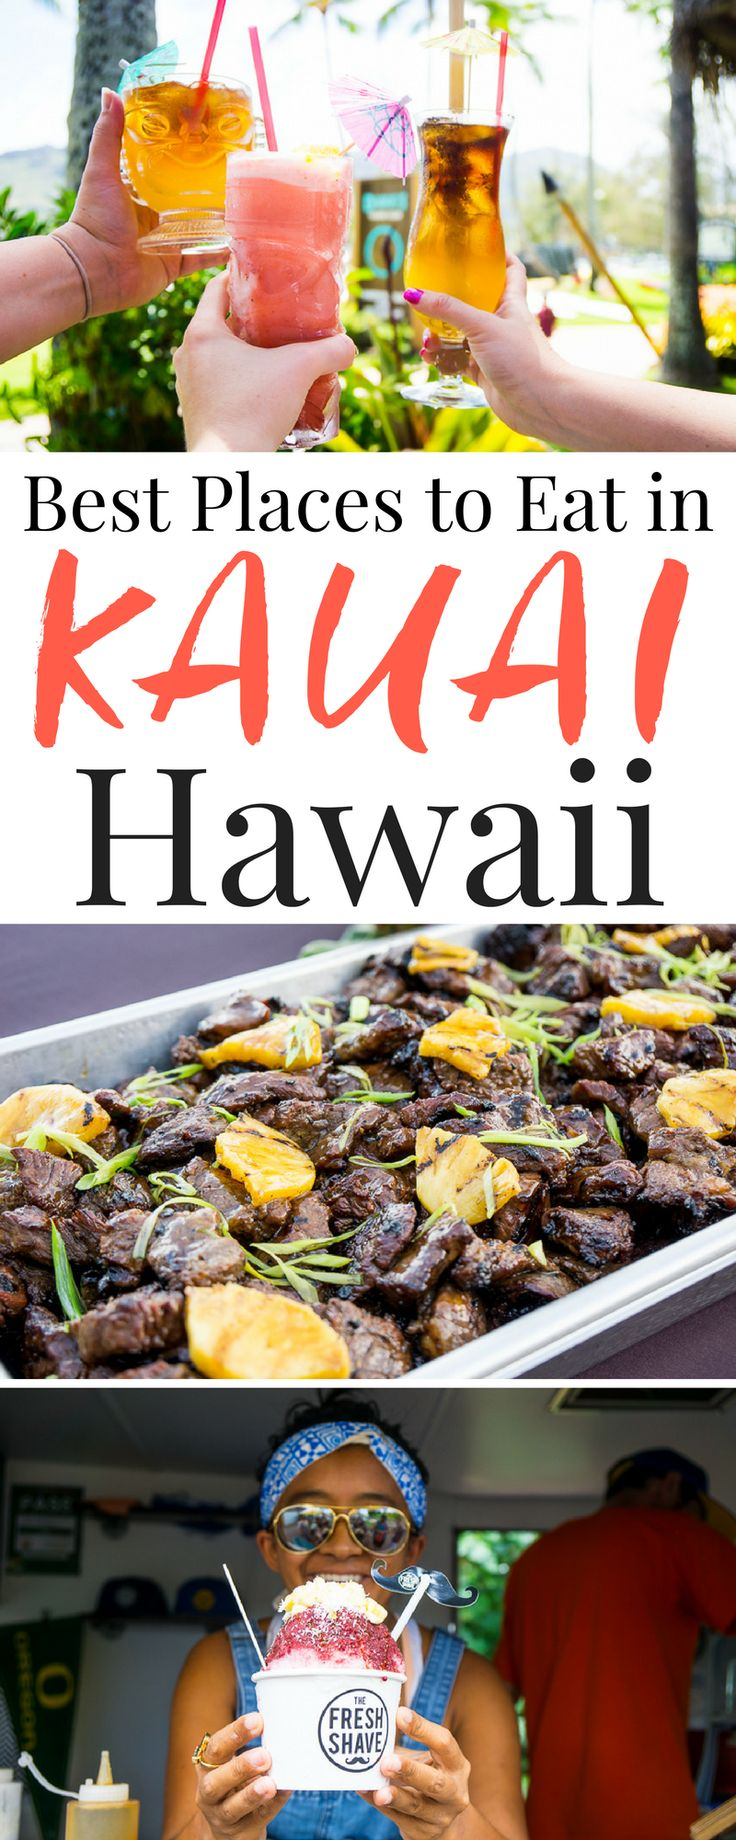 Planning a trip to Hawaii? These are the 10 Best Places to Eat In Kauai, don't miss them!